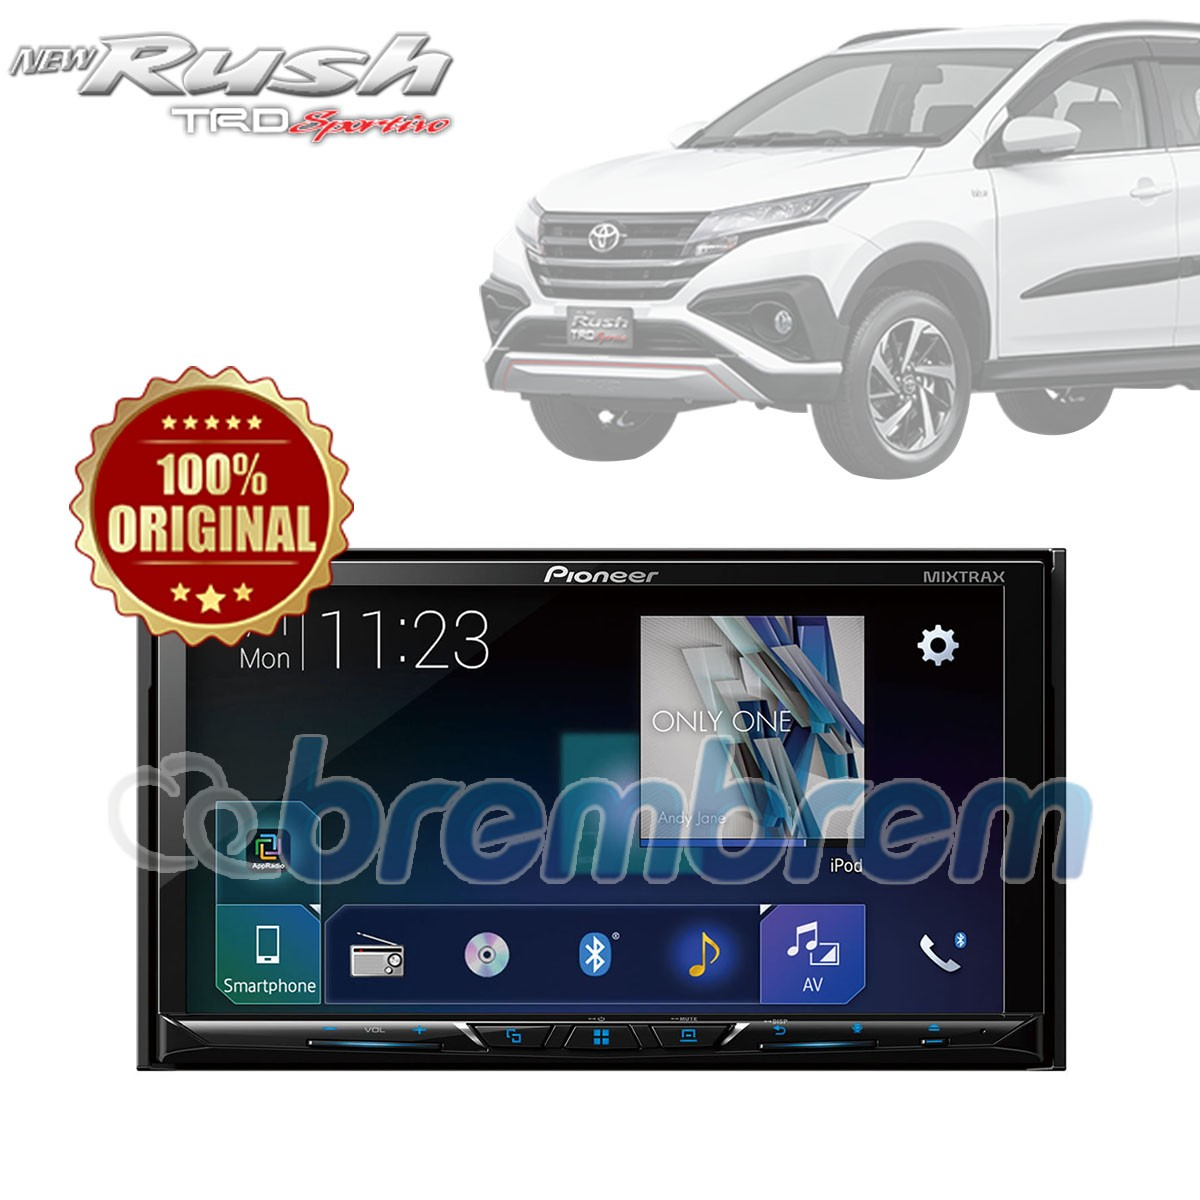 PIONEER AVH-A5150BT - HEADUNIT DOUBLE DIN TOYOTA ALL NEW RUSH + SOKET TOYOTA